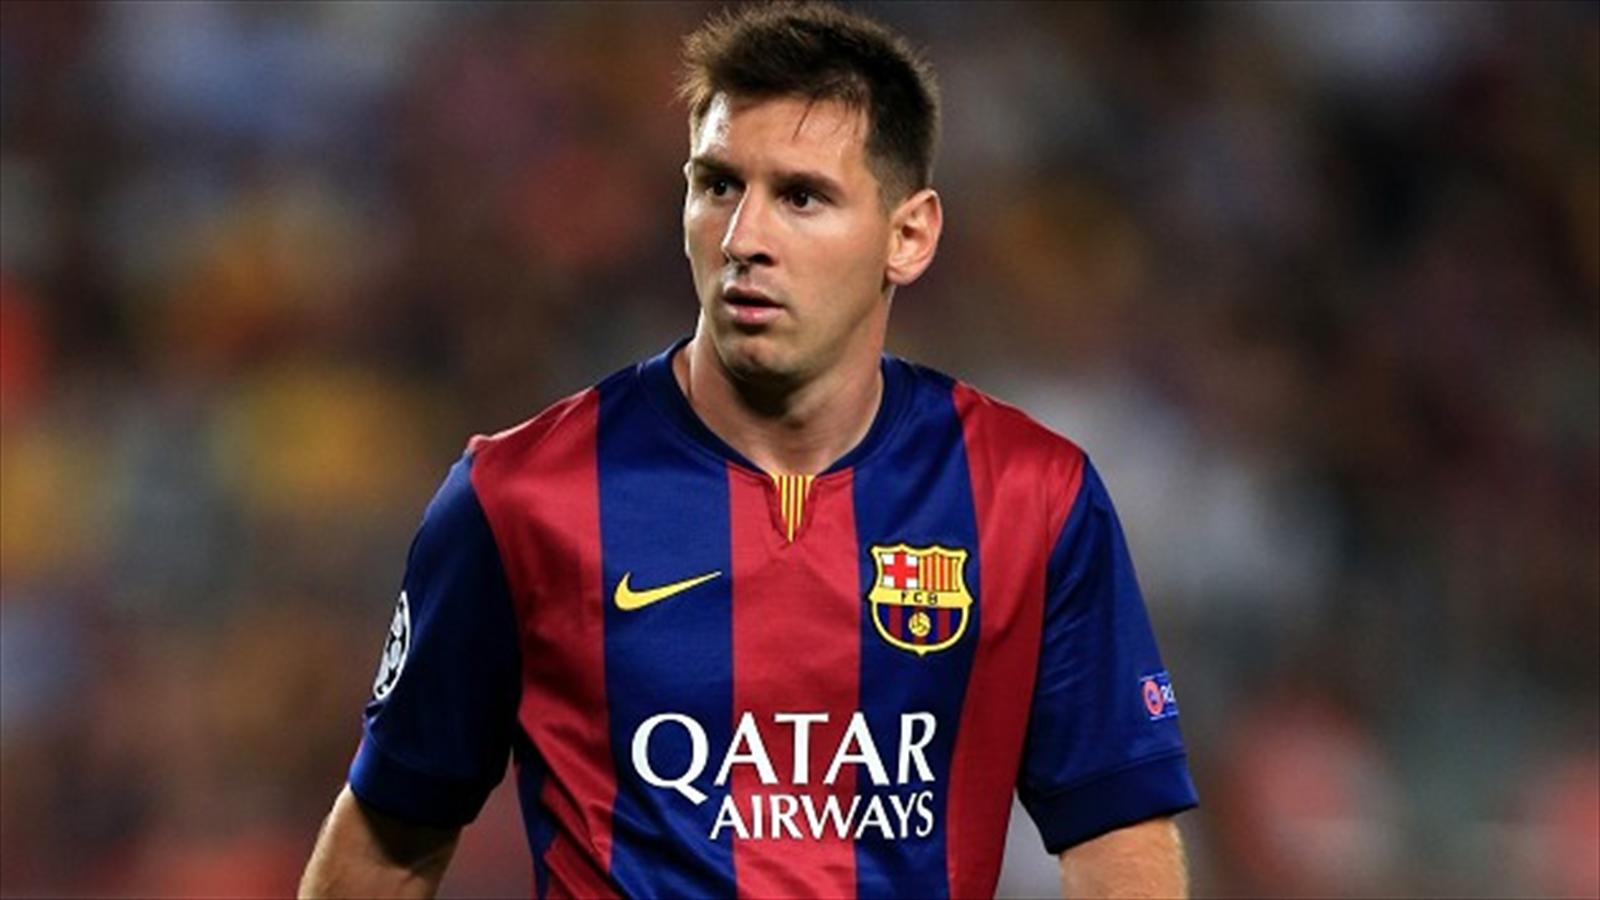 Messi's father plays down 'Barca exit' comments - Liga 2014-2015 - Football - Eurosport